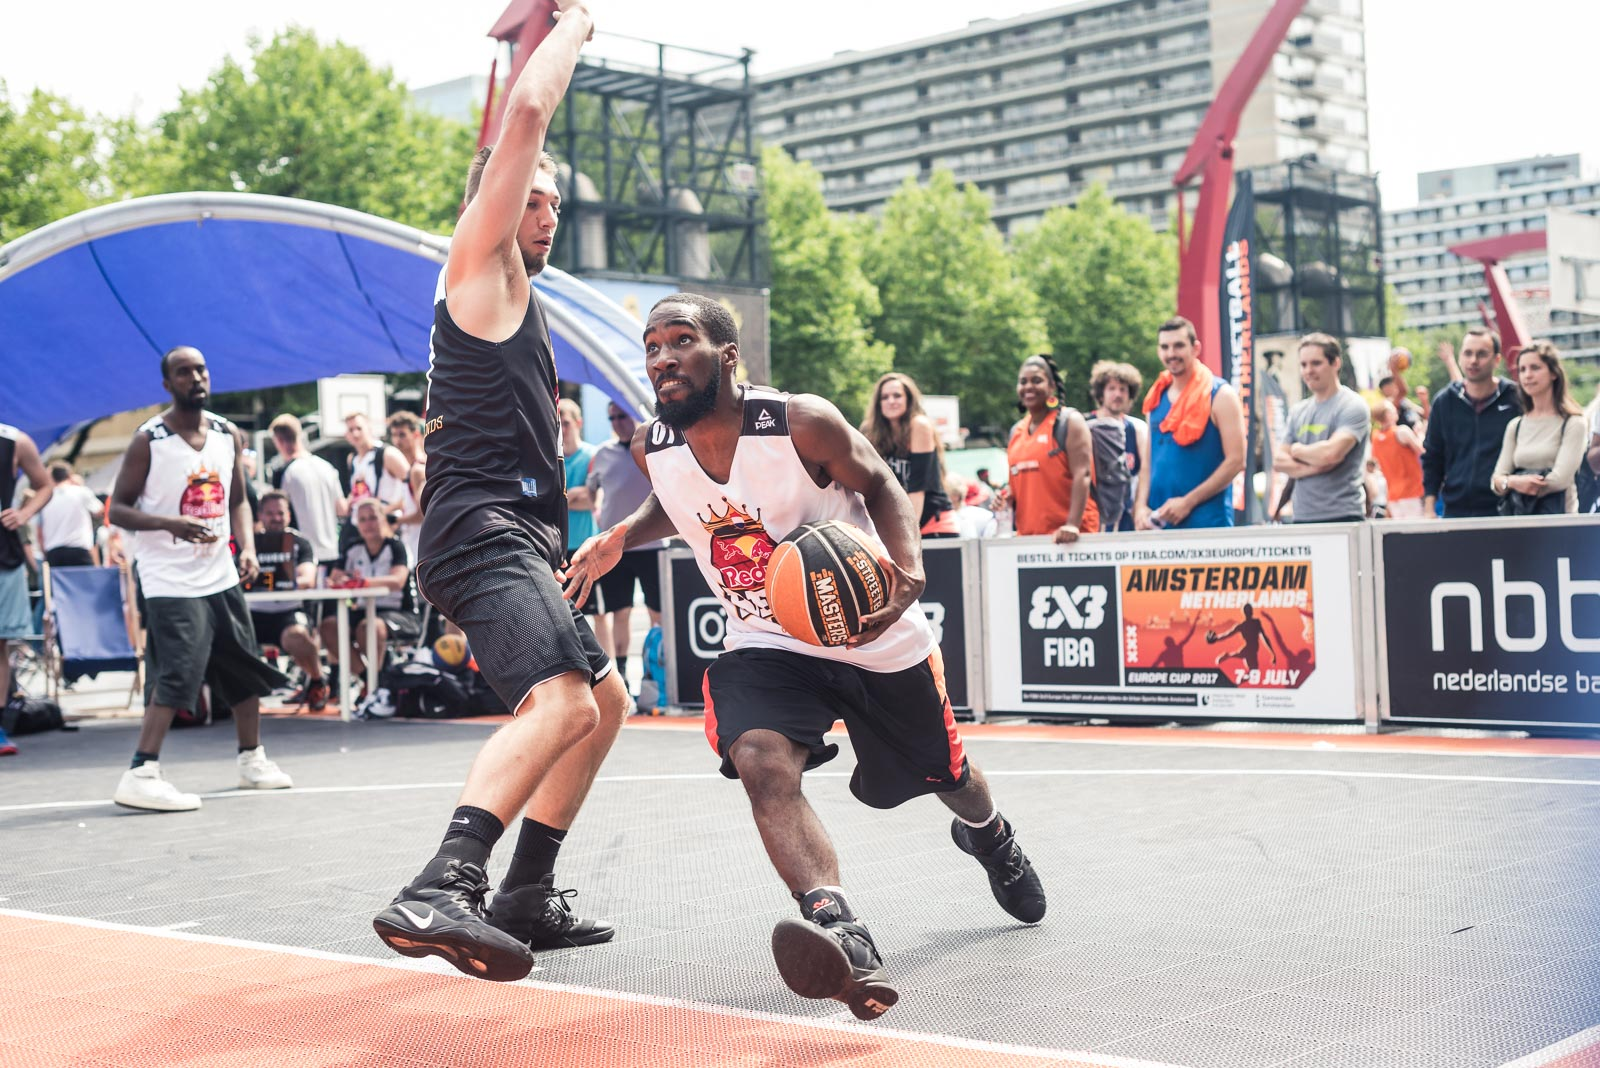 Basketball player driving the ball to the basket